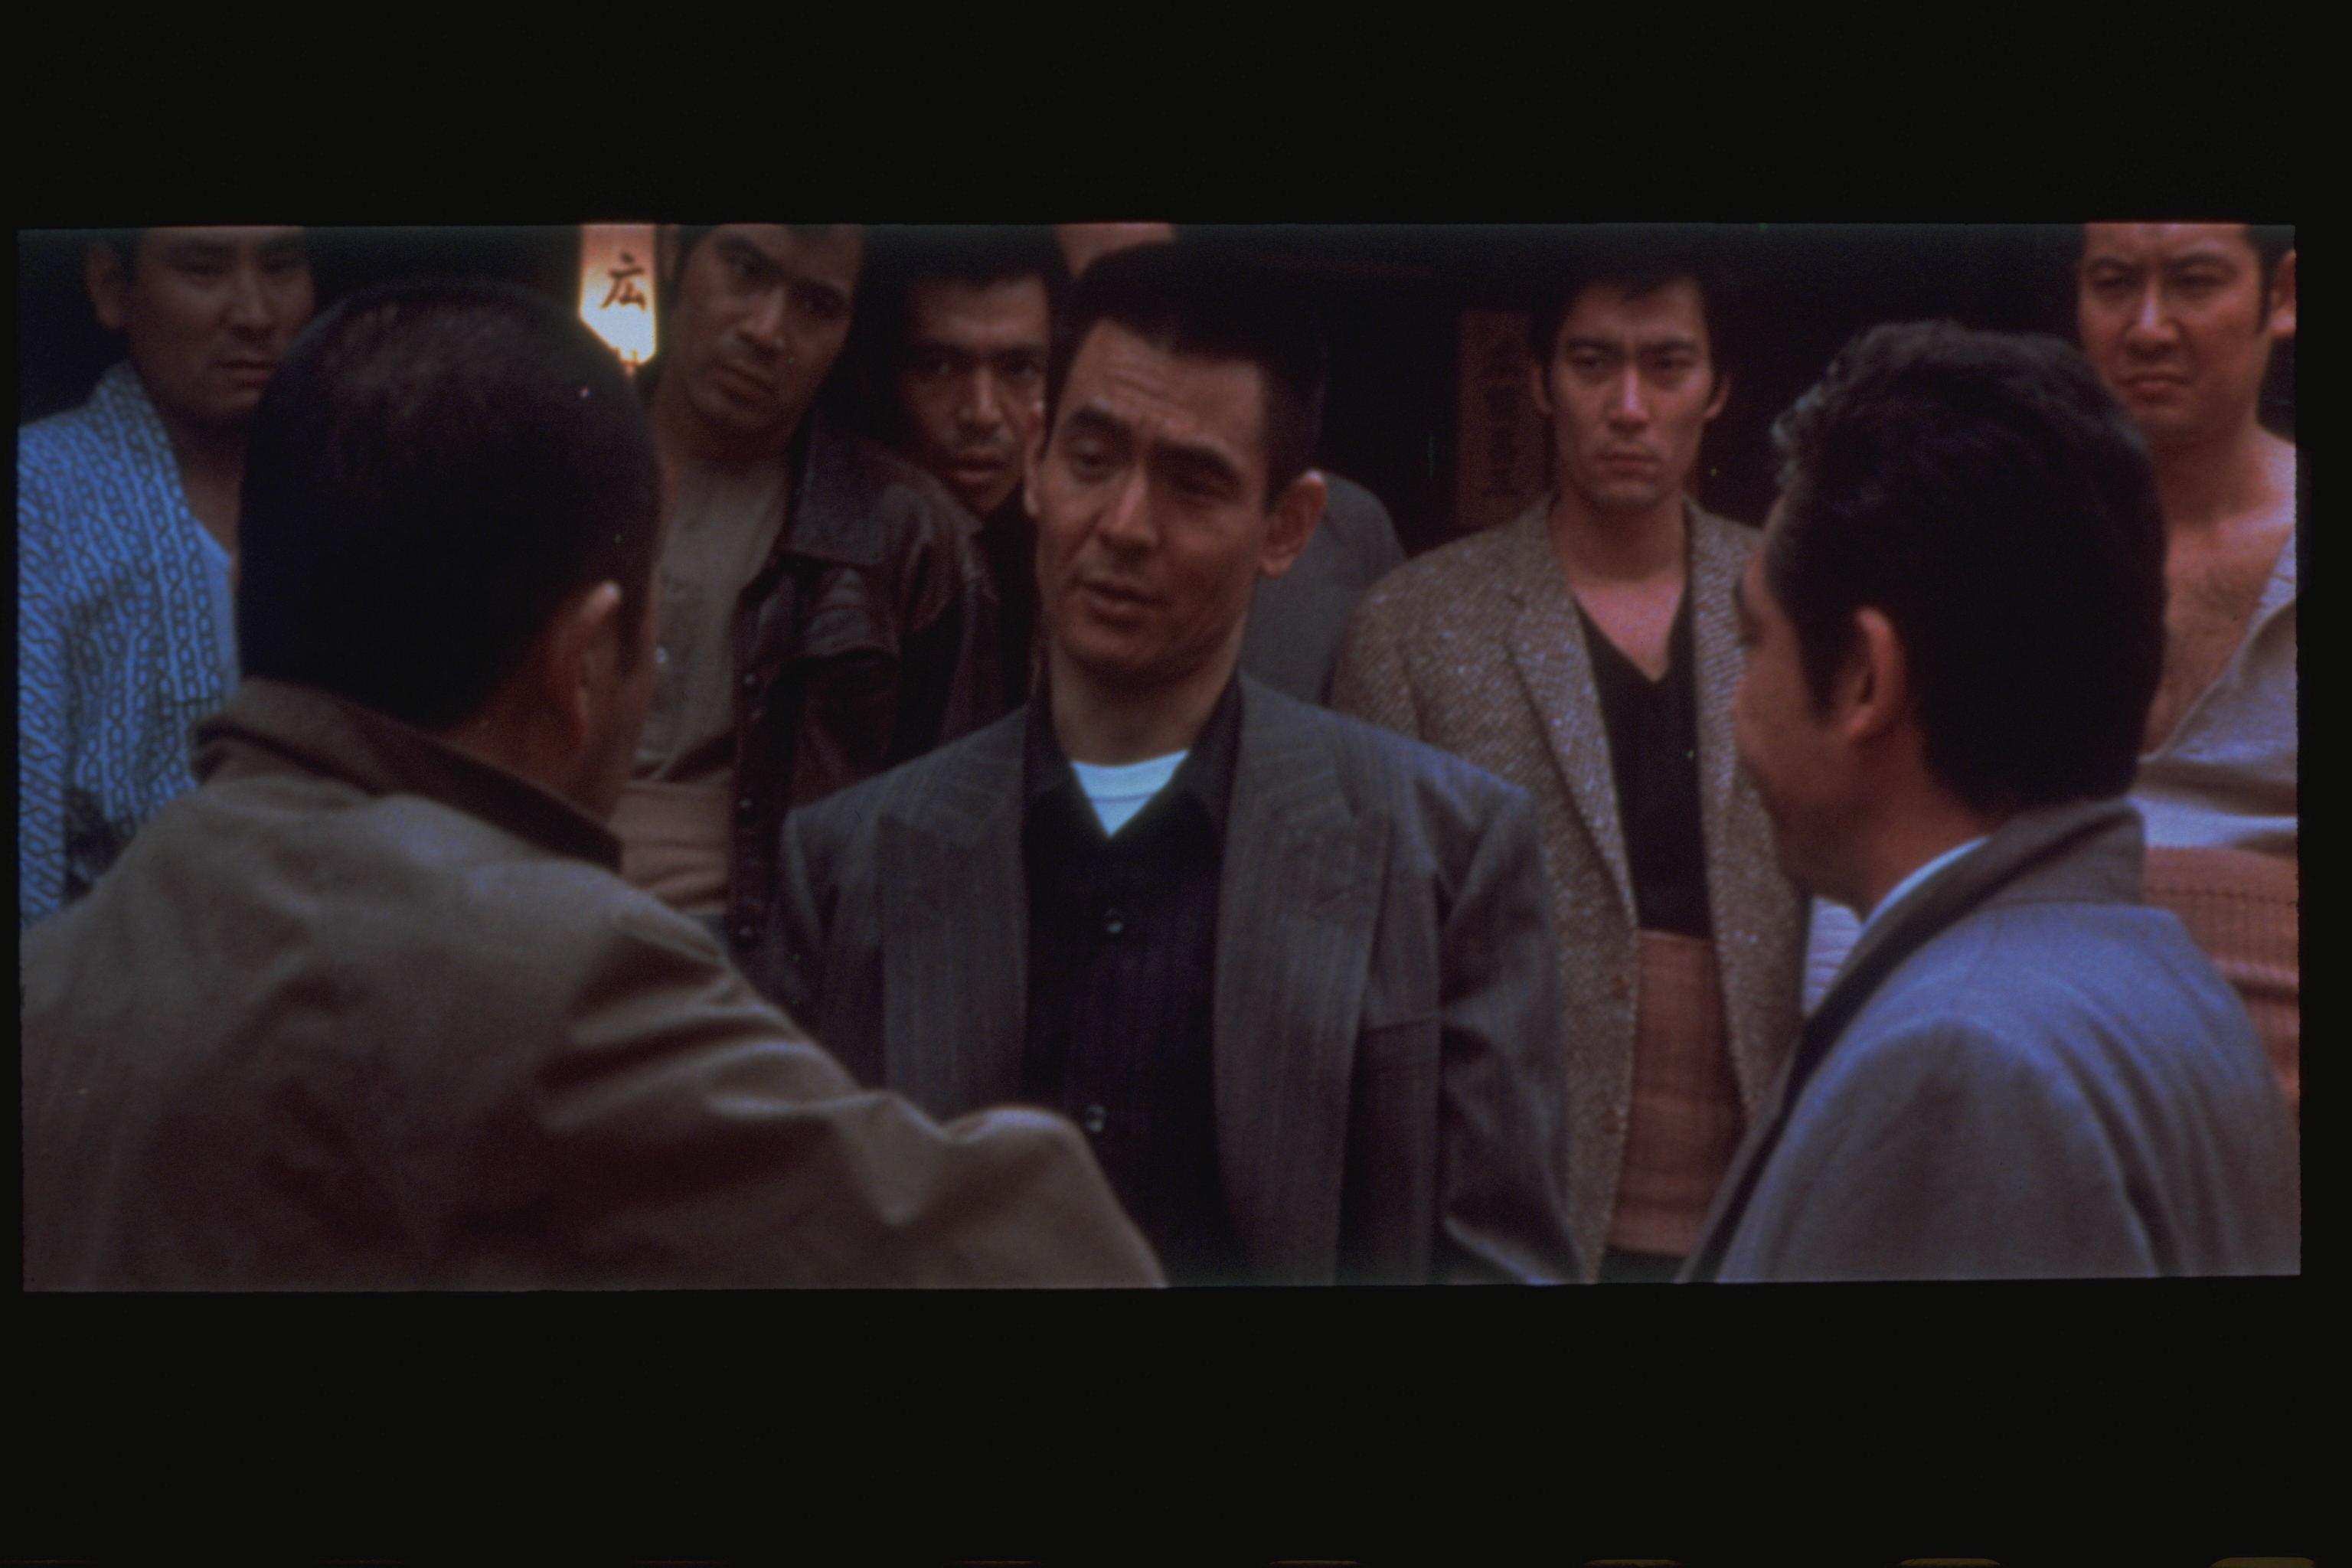 the yakuza essay The ecstasy of influence a plagiarism a panoply of vintage hollywood films but from shakespeare and f scott fitzgerald and junichi saga's confessions of a yakuza.